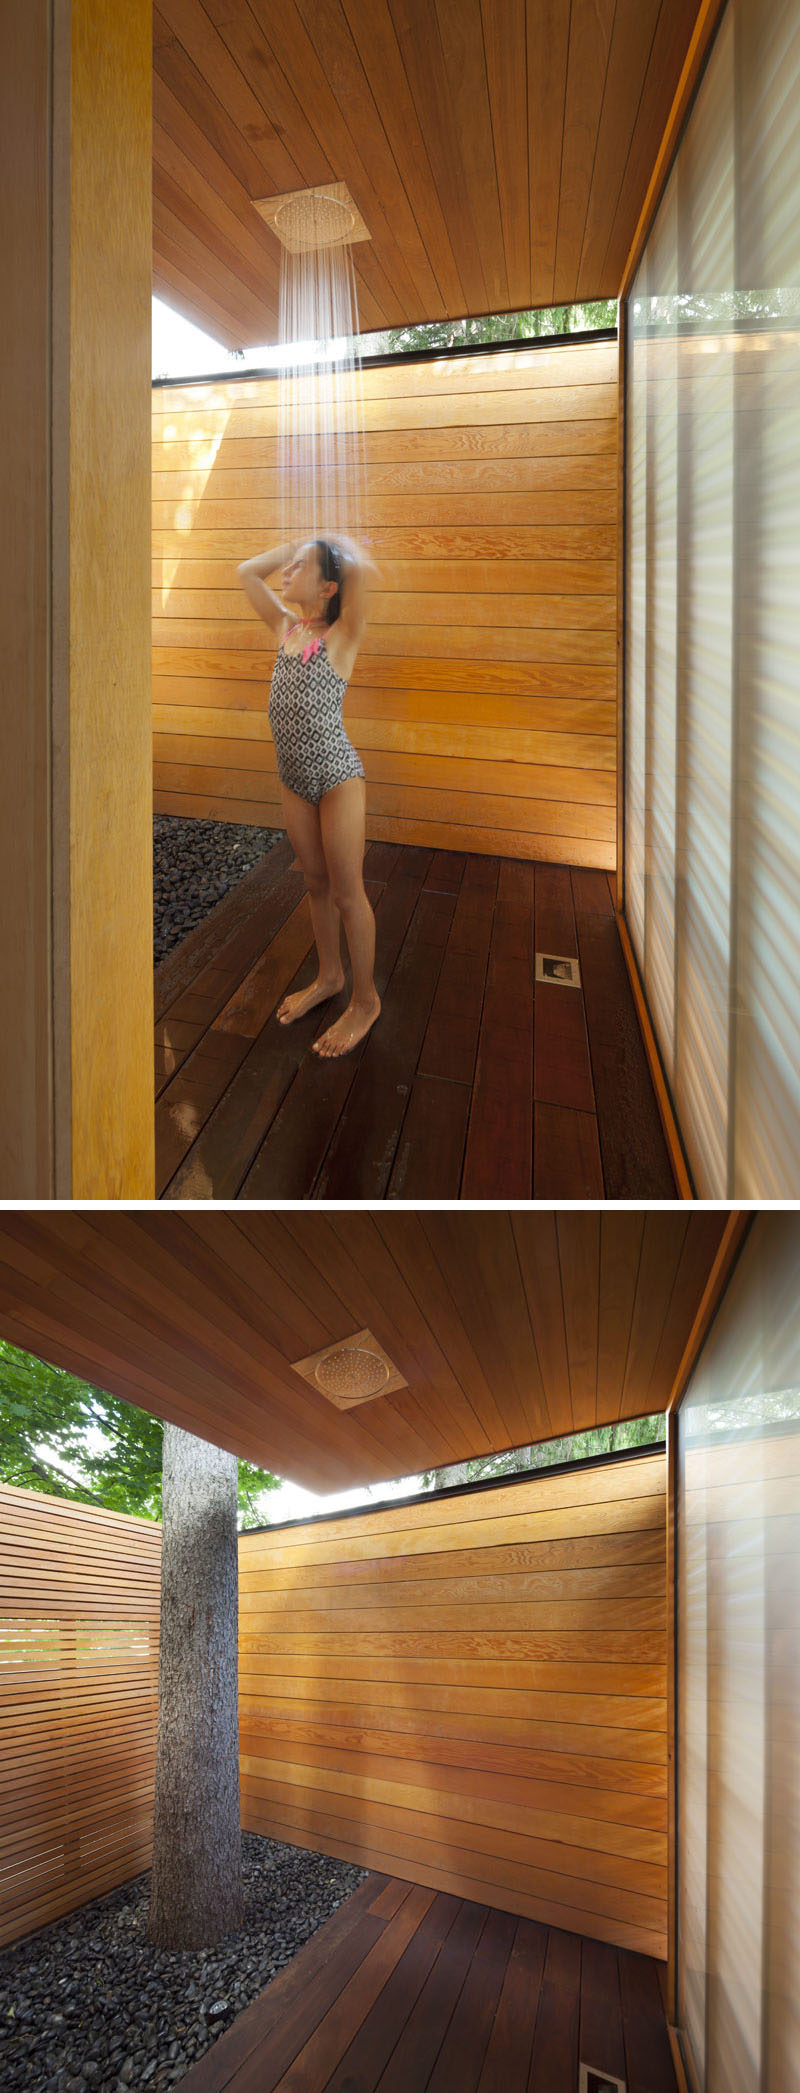 A Pool House Was Designed To Contain A Shower And Change